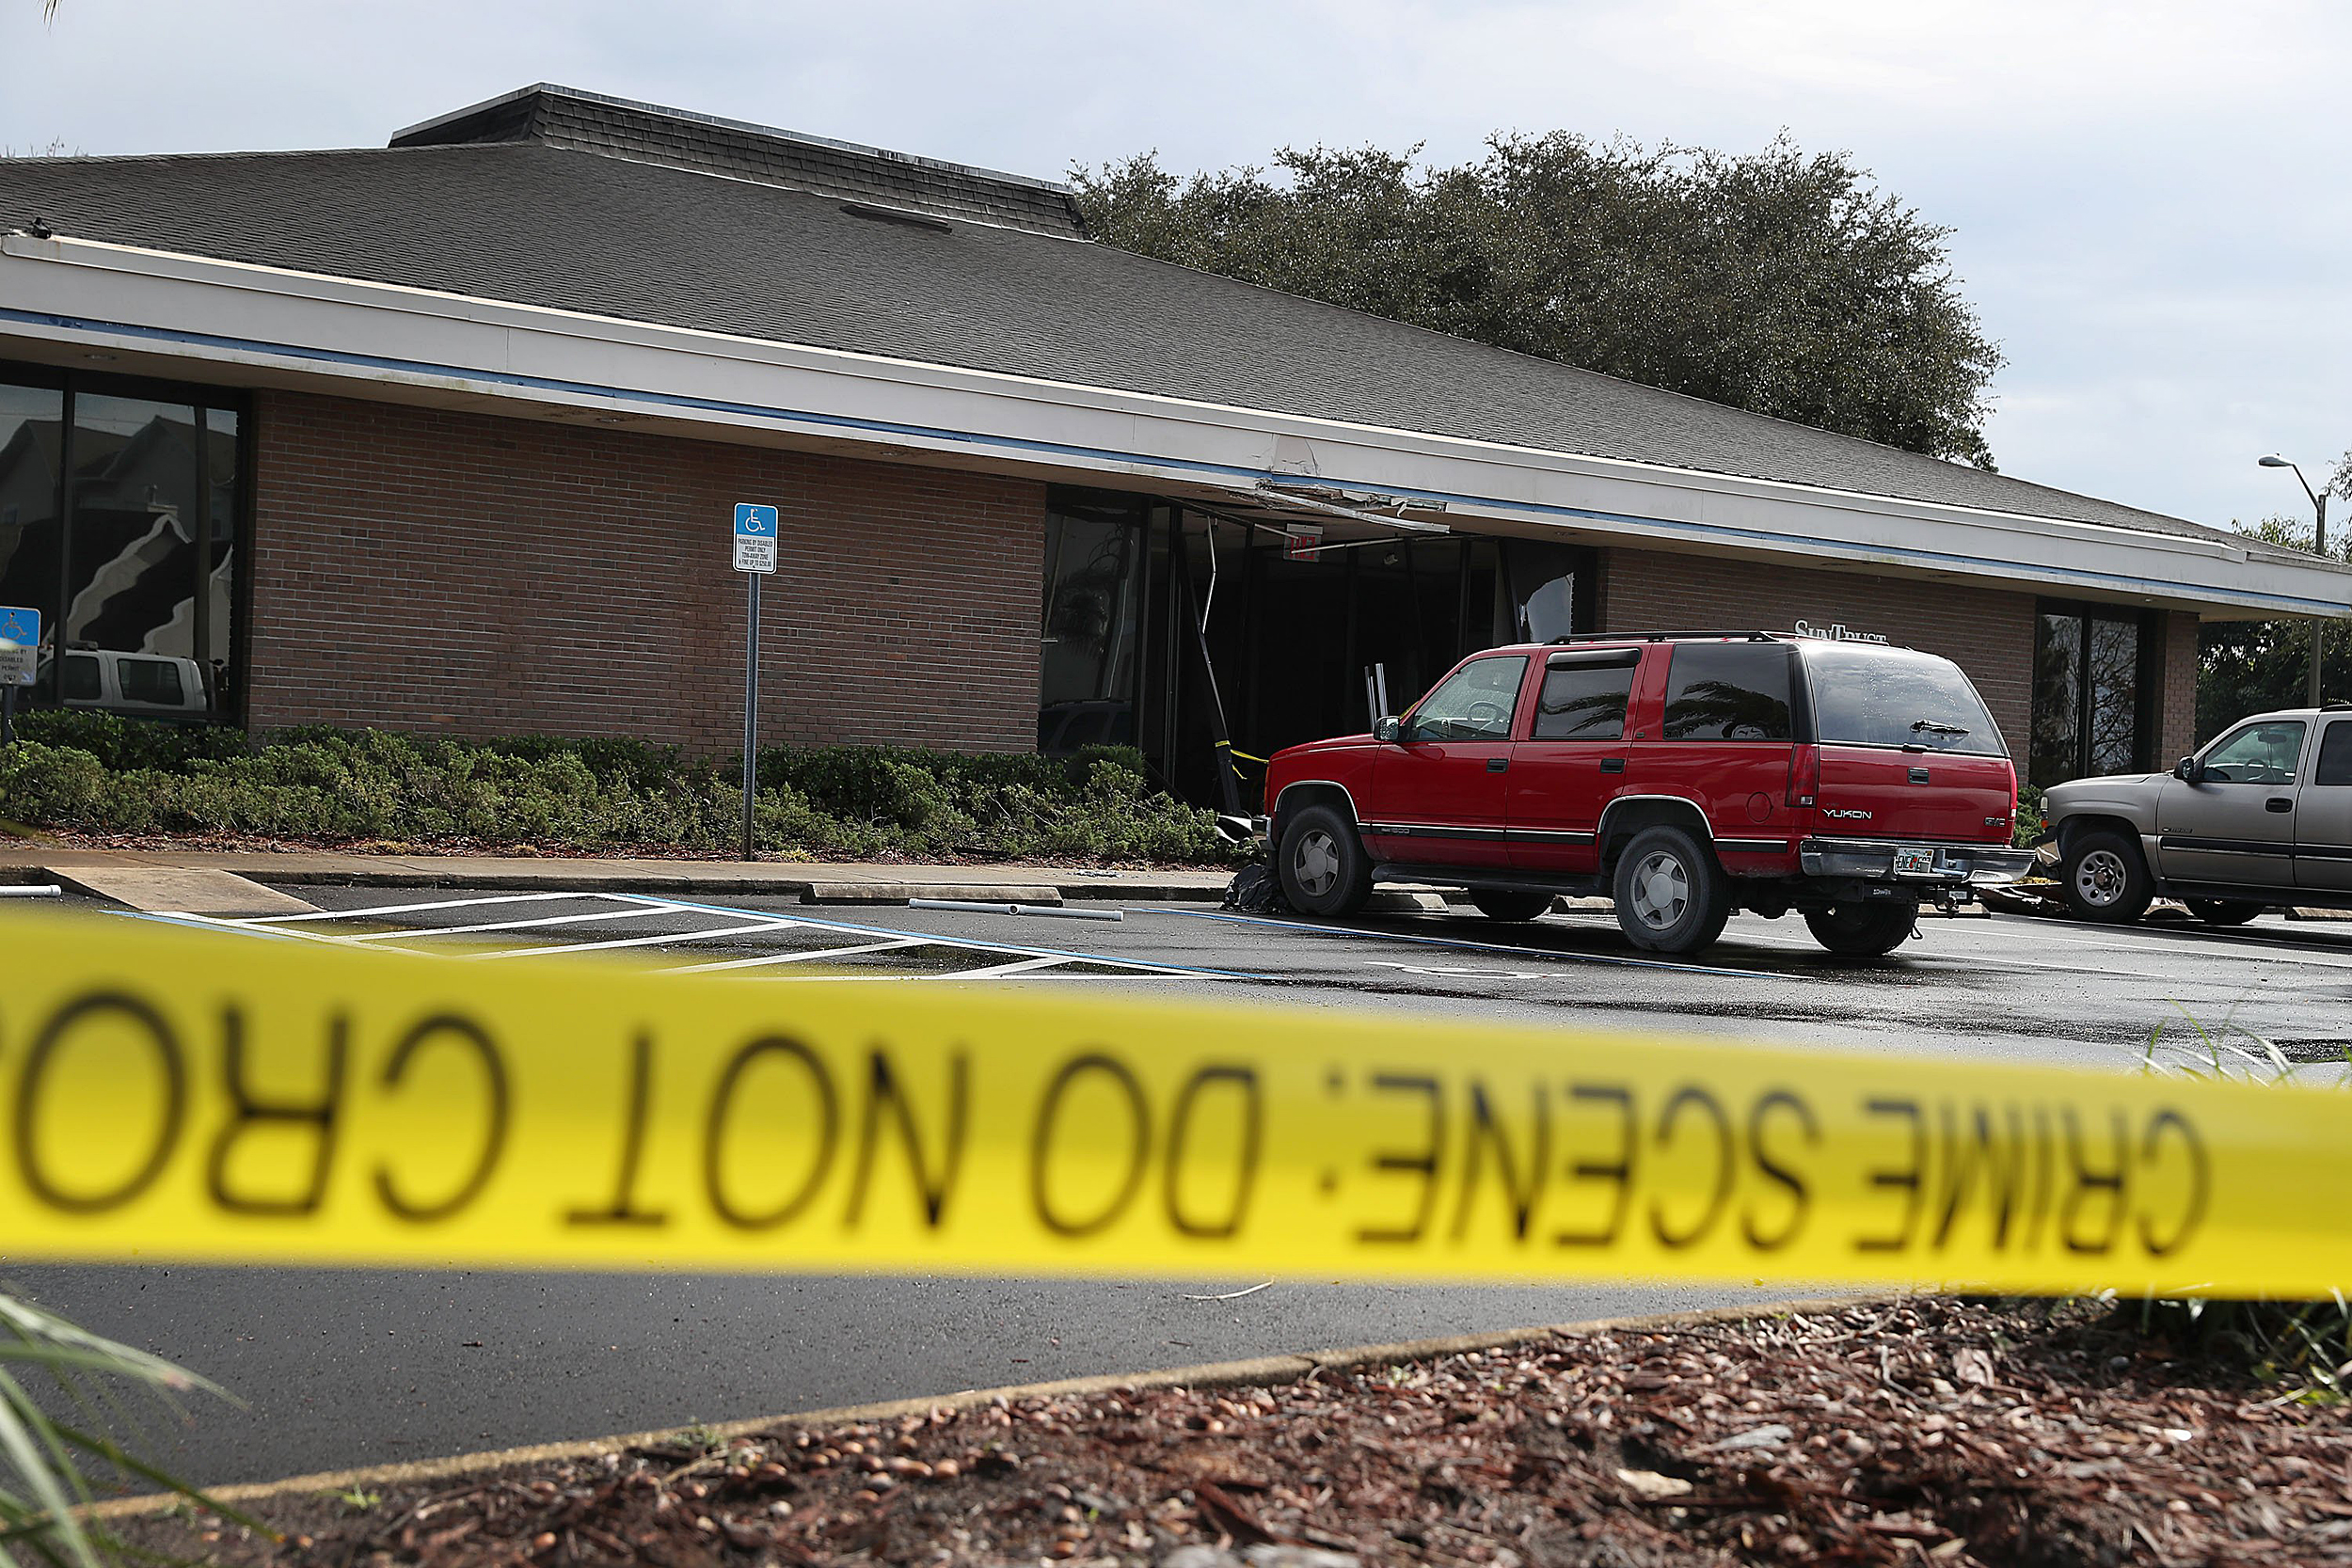 Suspect in SunTrust bank shooting in Florida faces death penalty